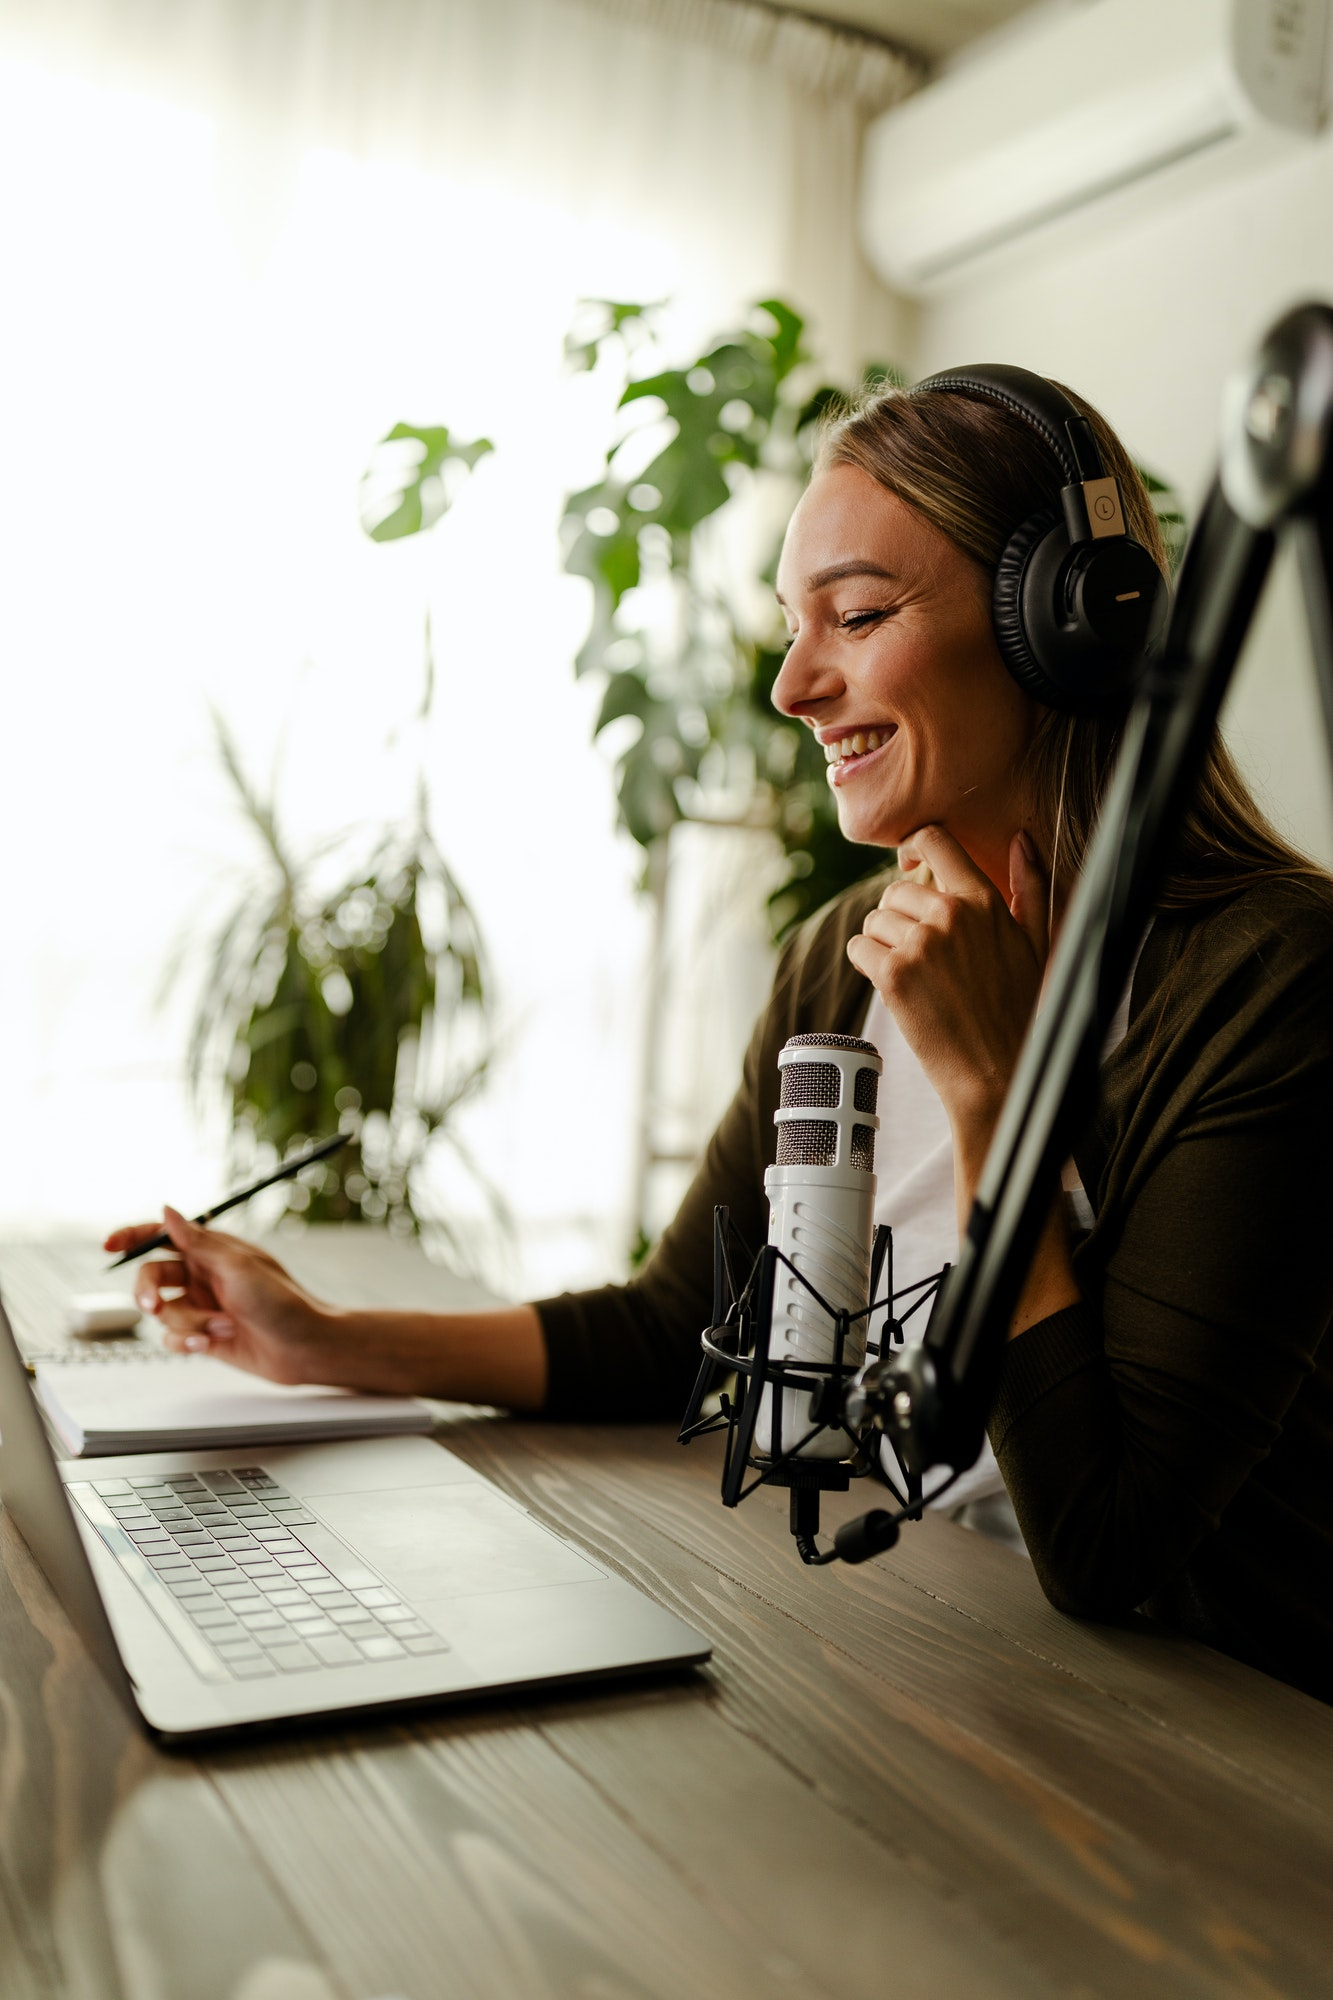 Young woman recording podcast using microphone. Radio host working from home.